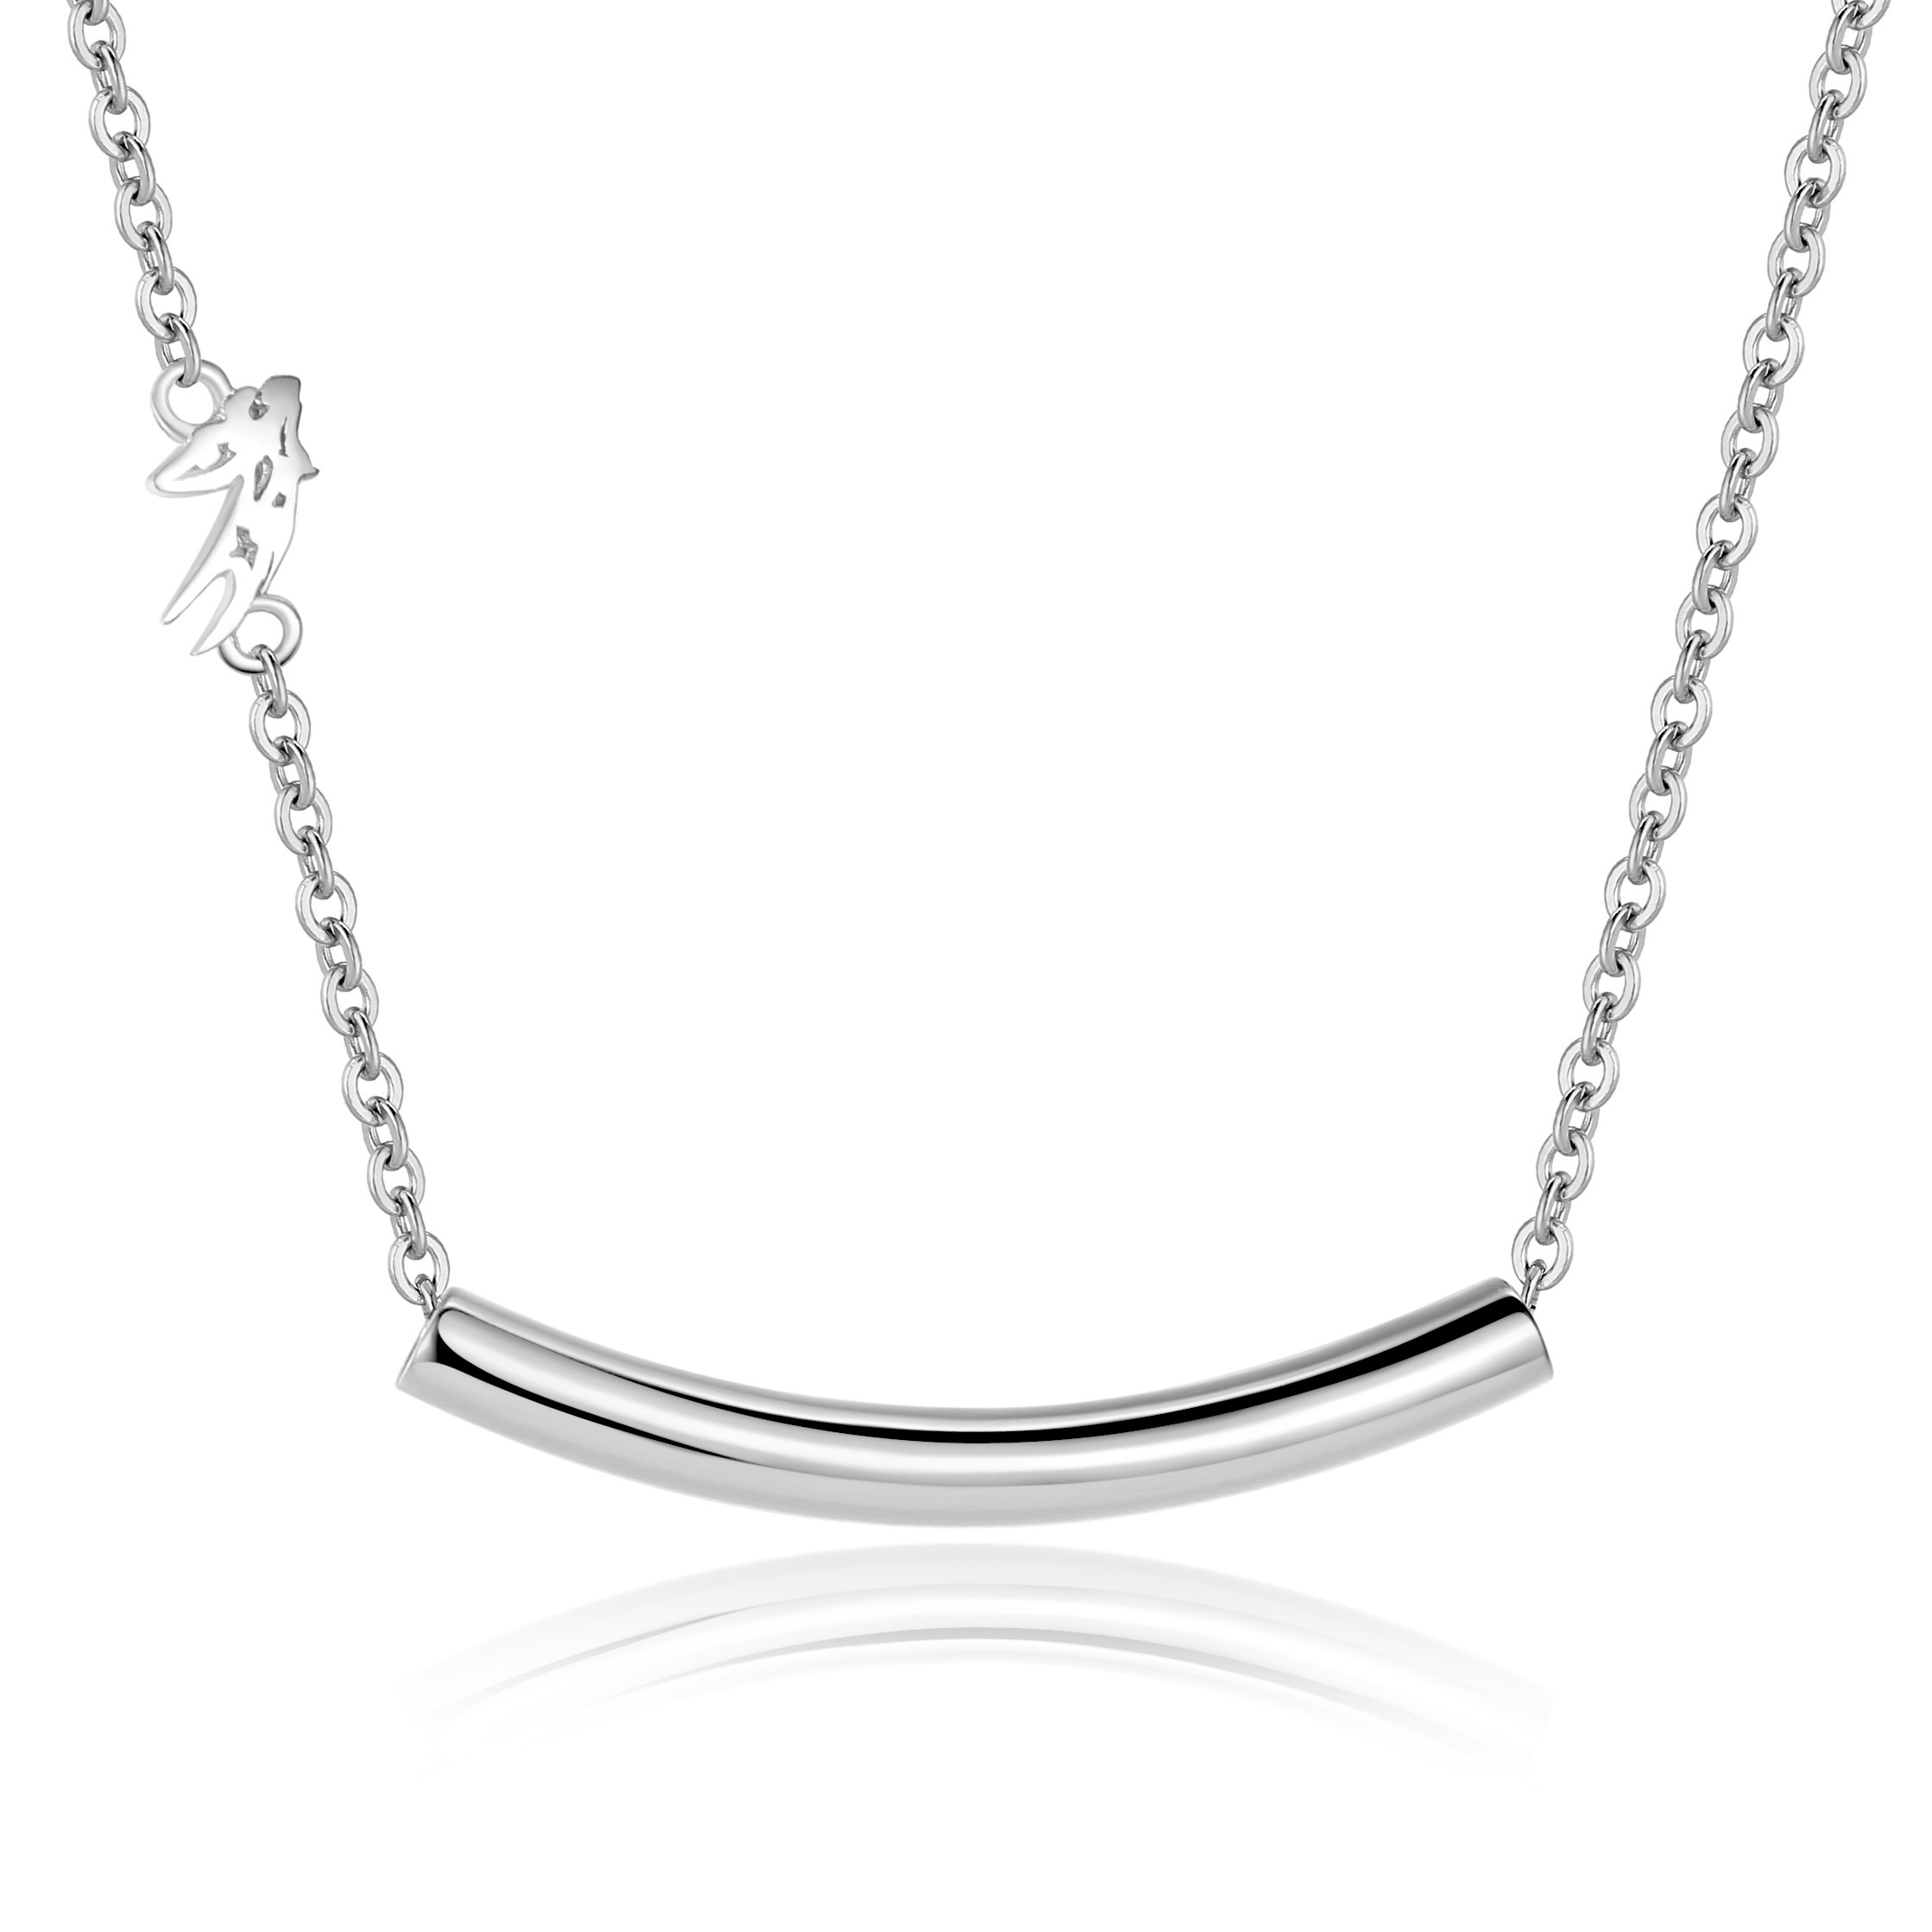 cable keep pendant hangs plain silver pn special along to close products heart chain with rectangle sterling necklace someone an locket was this timeless that necklaces aeravida inches your details rectangular